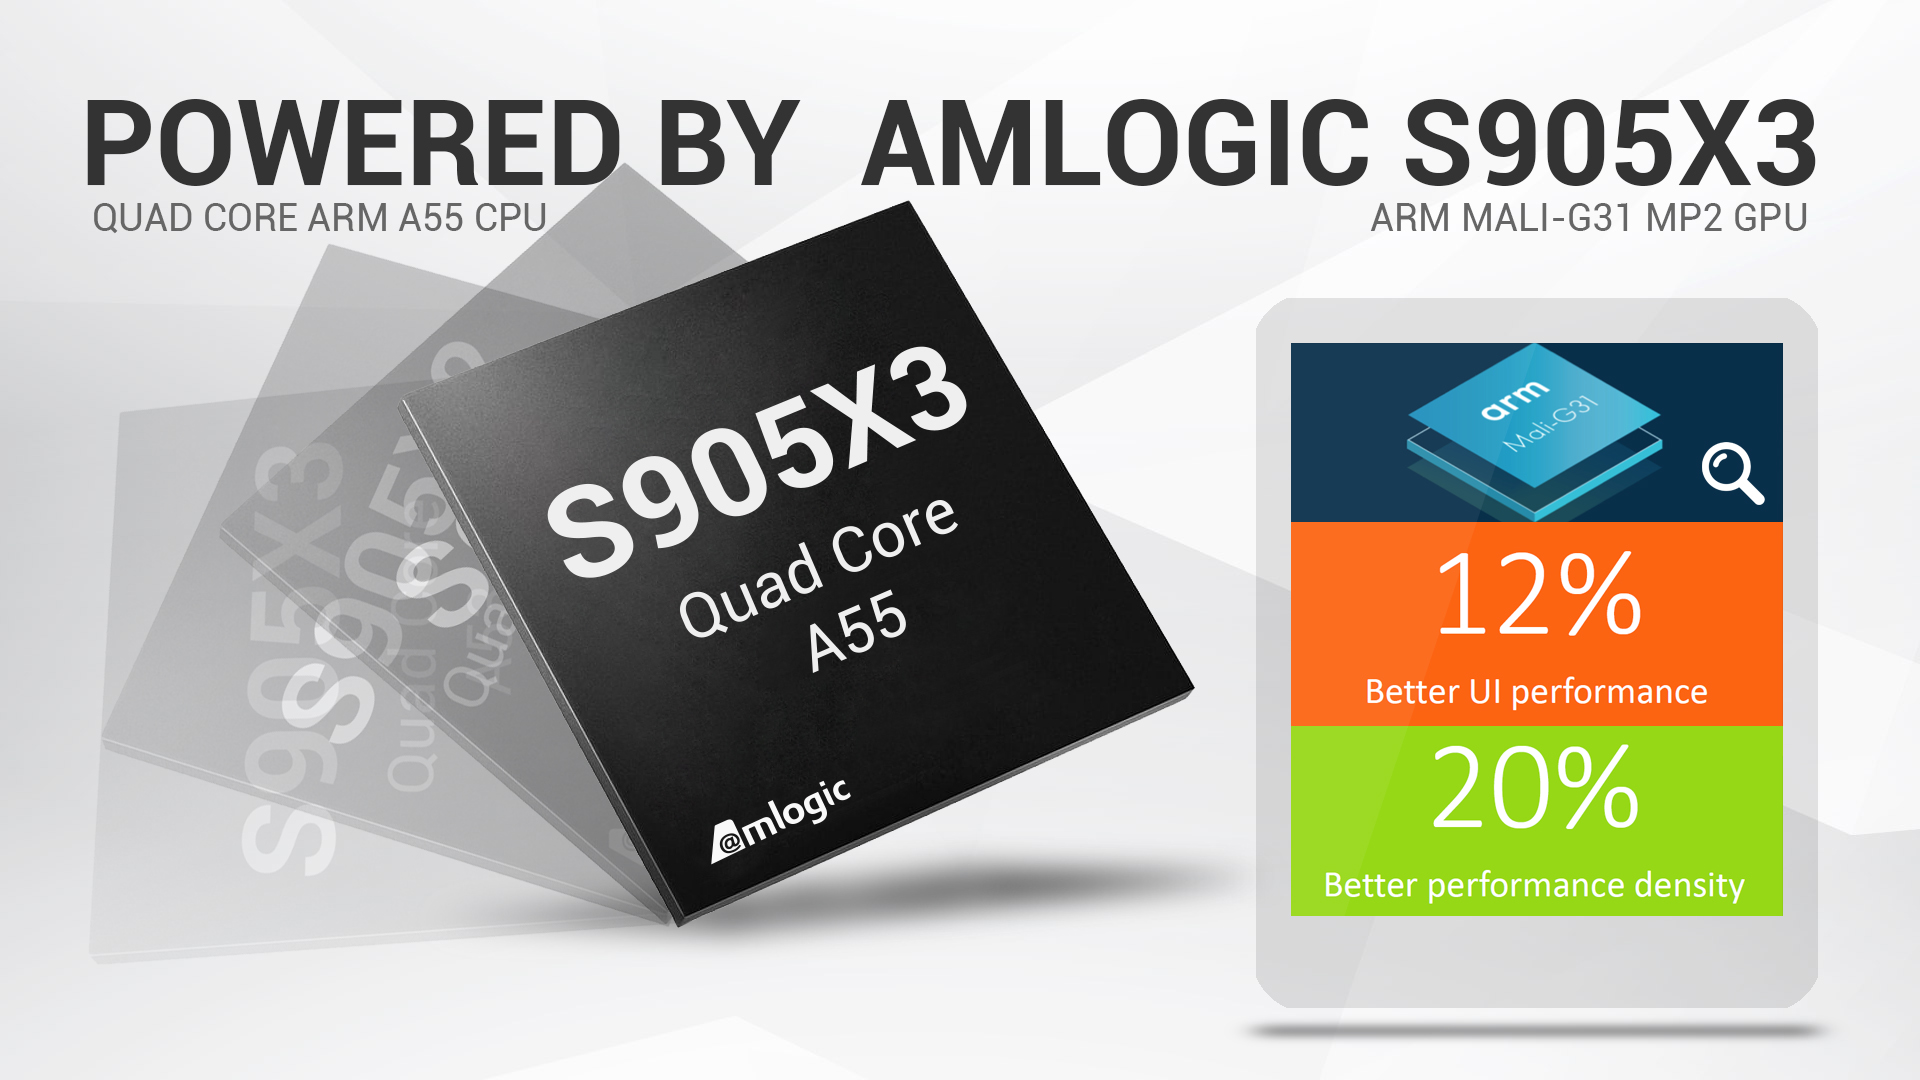 TX3 Amlogic S905X3 Quad Core 2/16gb 4/32/64gb Dual Wifi BT Android9.0 אנדרואיד טלוויזיה תיבה